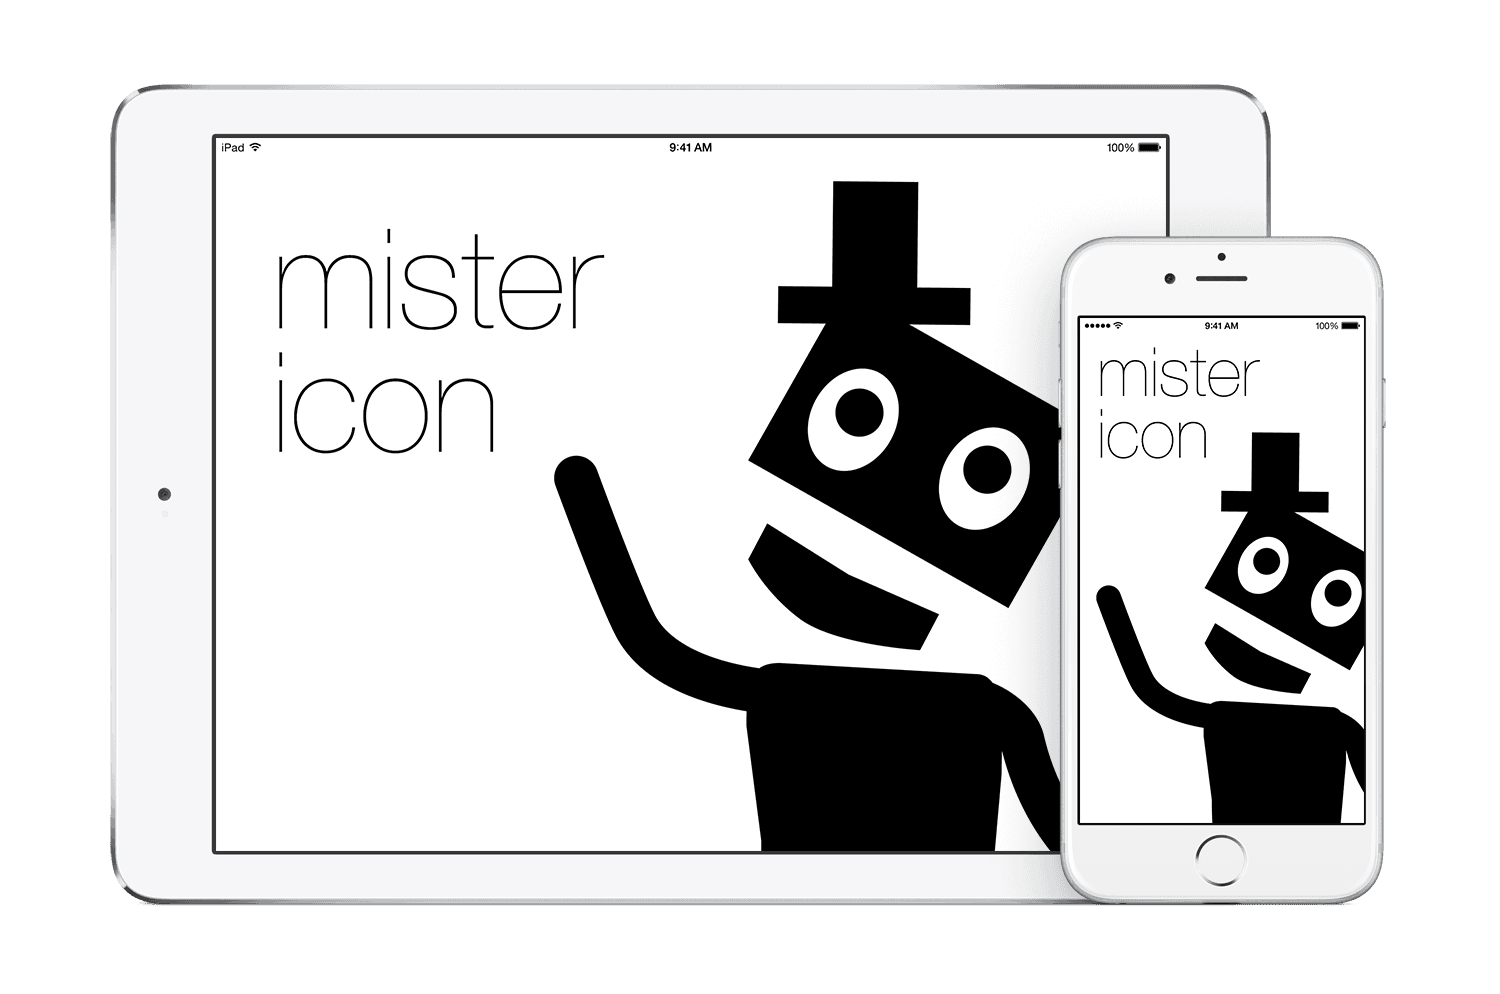 Mister Icon app running on iPhone 6 and iPad Air 2